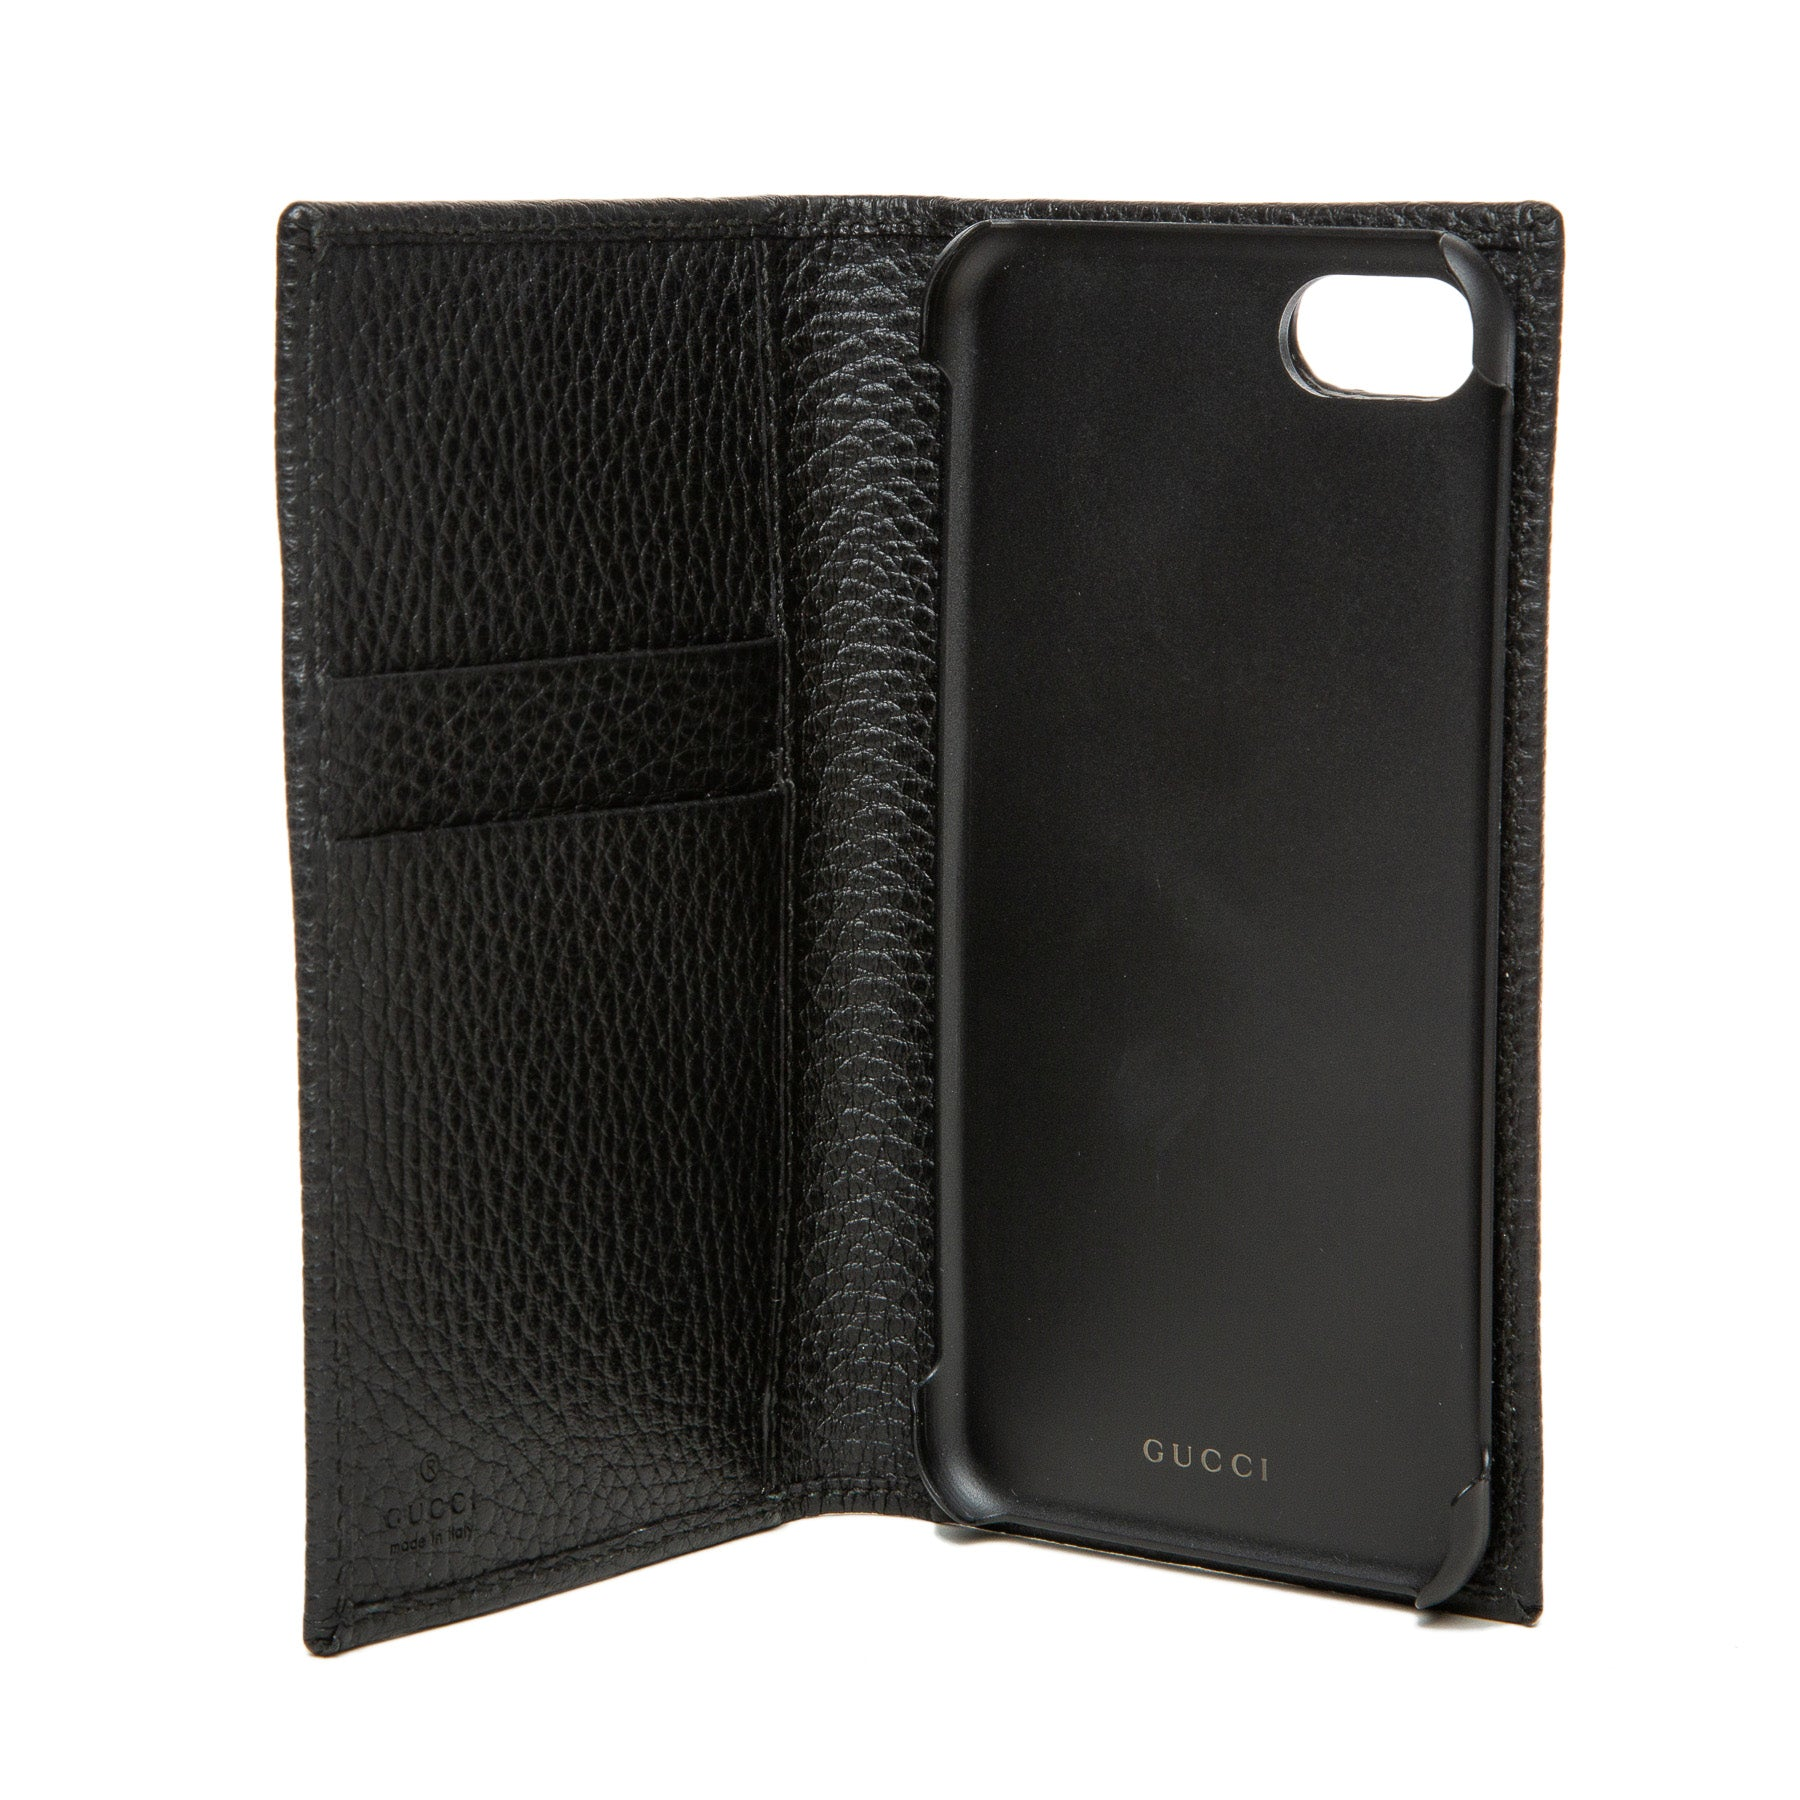 GUCCI | BLACK LEATHER CARD HOLDER AND PHONE CASE